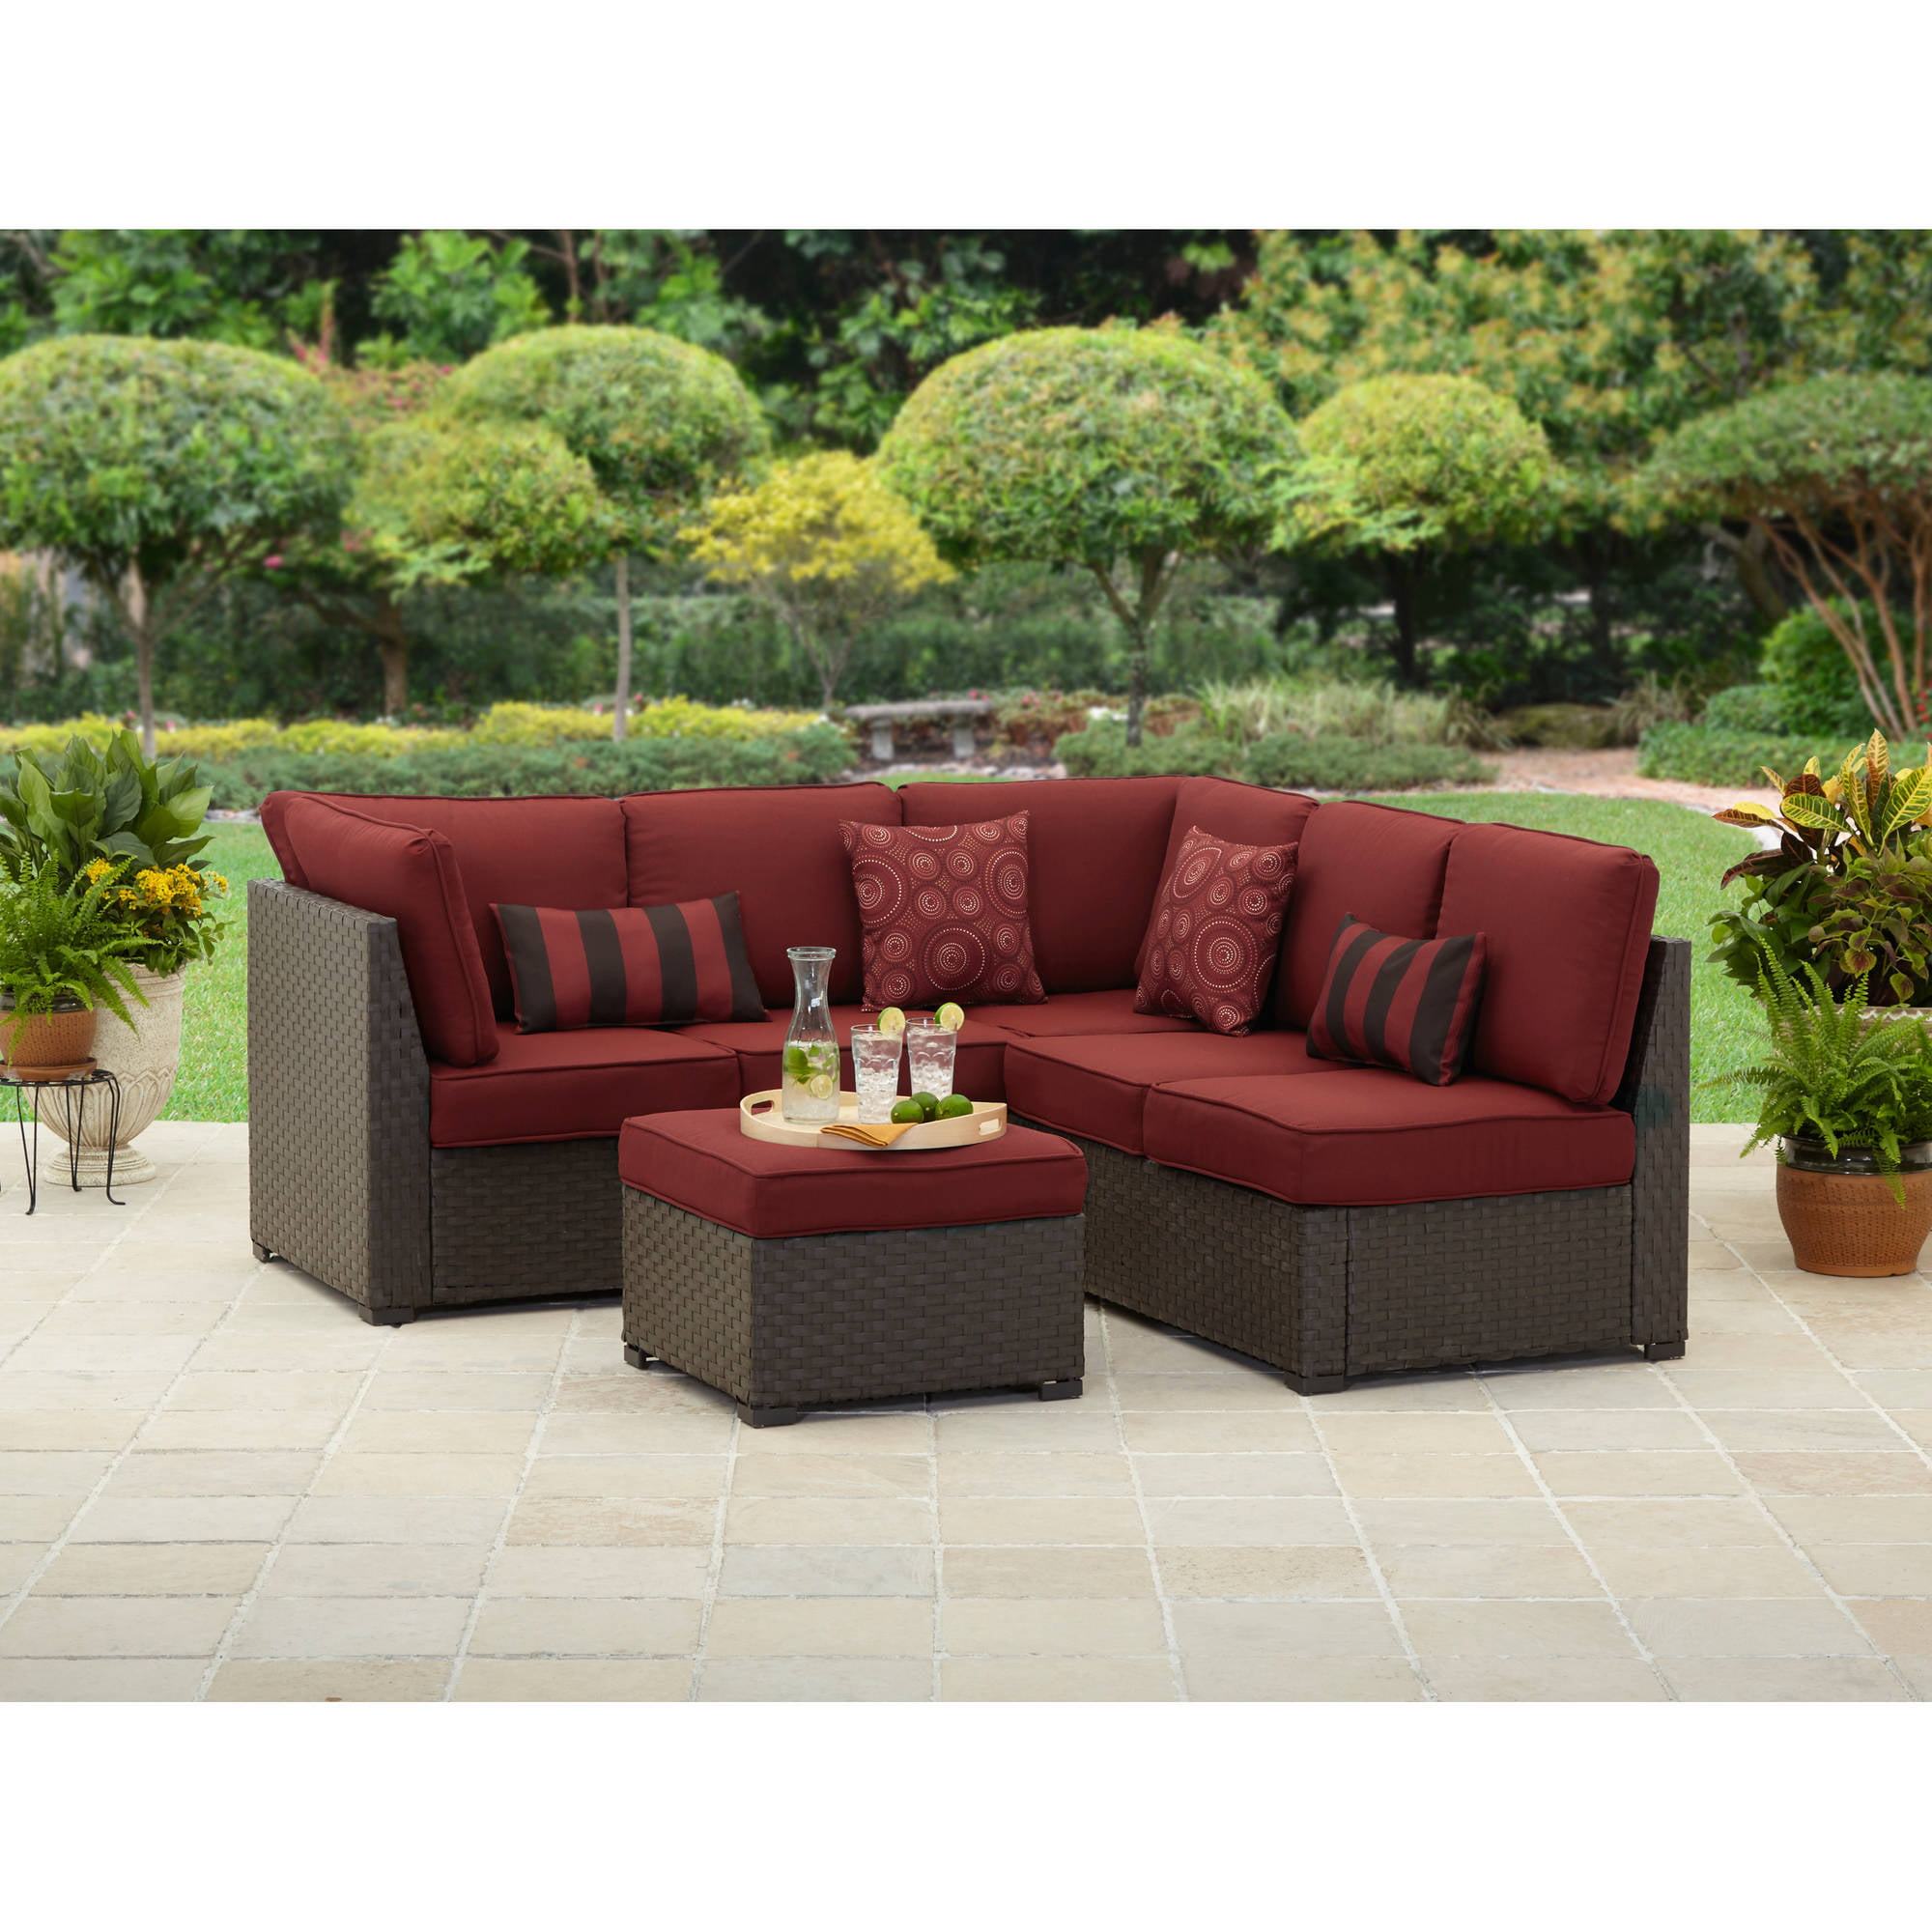 Better Homes And Gardens Rush Valley 3 Piece Outdoor Sectional   Walmart.com